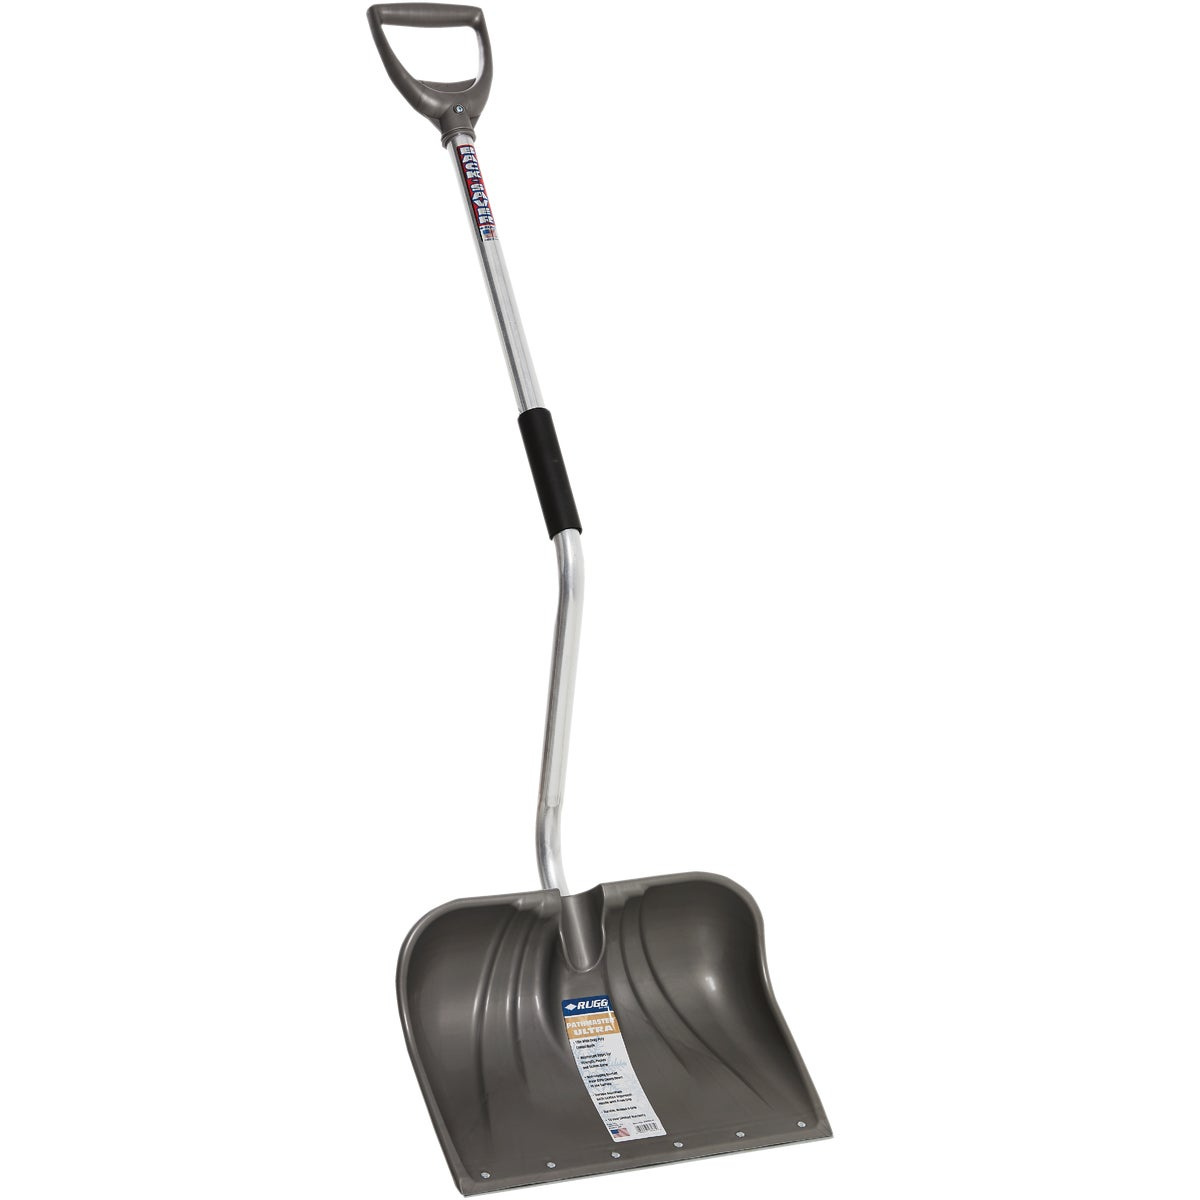 BENT HANDLE SNOW SHOVEL - 26-PBSW-S by Rugg Manufacturing